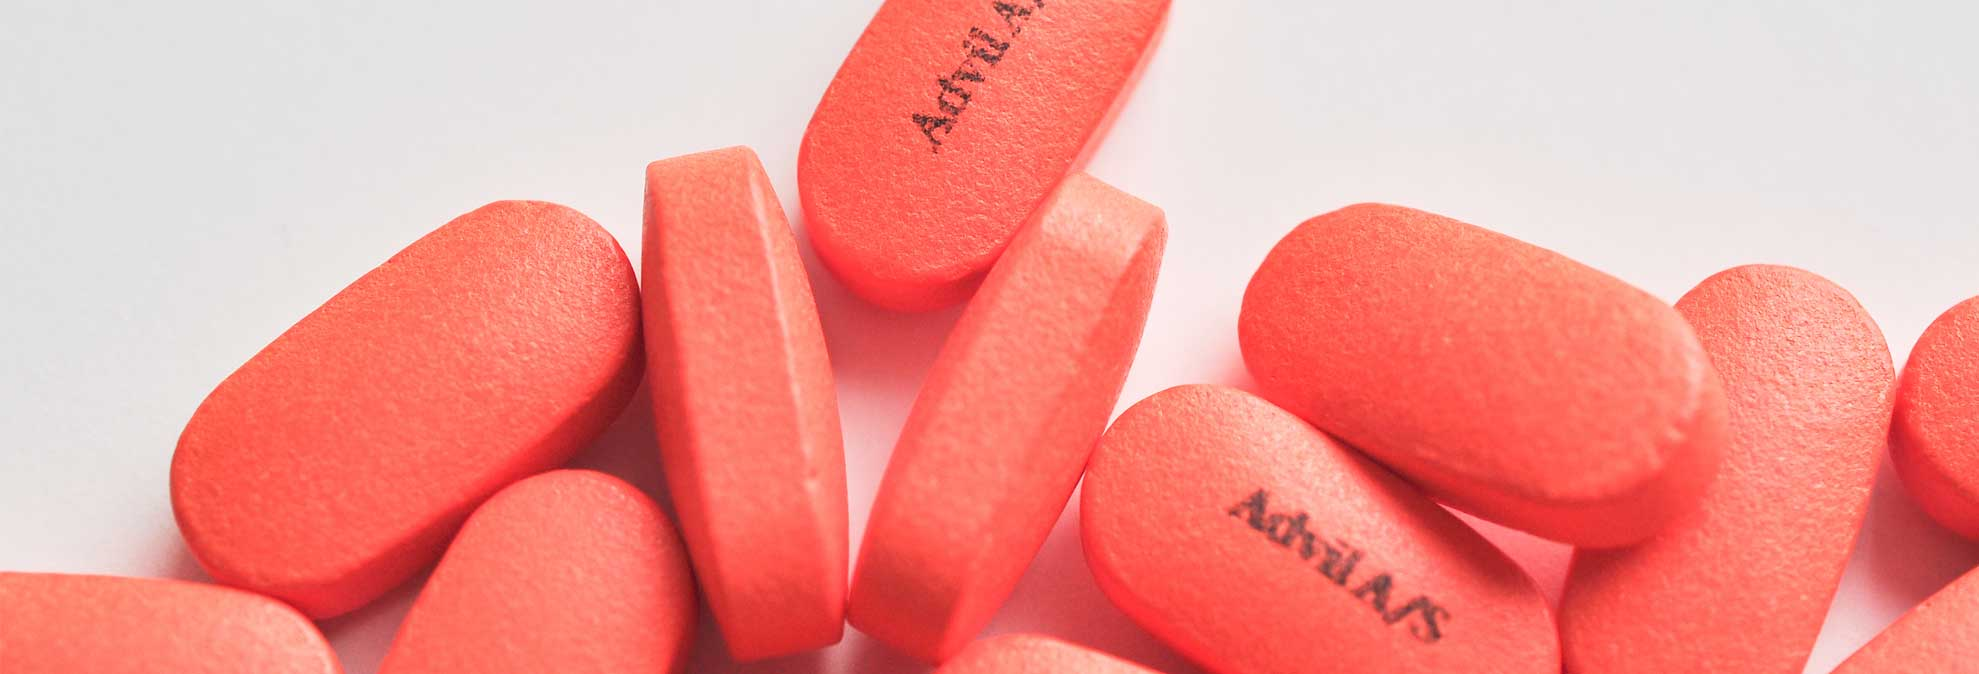 Meds That Cause Blurred Vision, Hearing Loss, and More